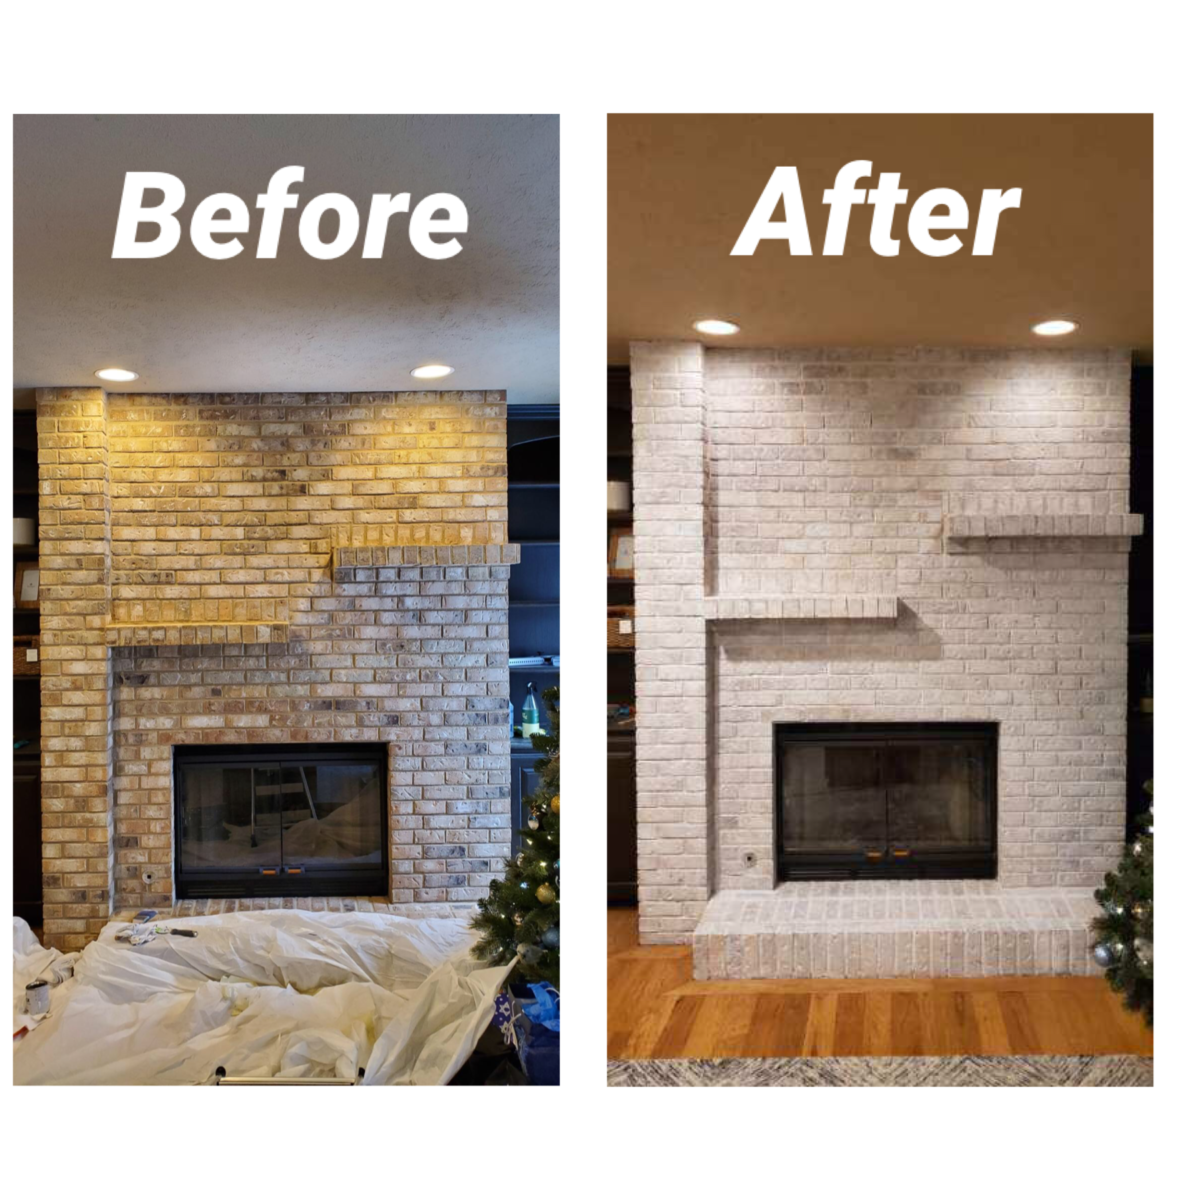 Before and after whitewashing a brick fireplace - Her Heartland Soul